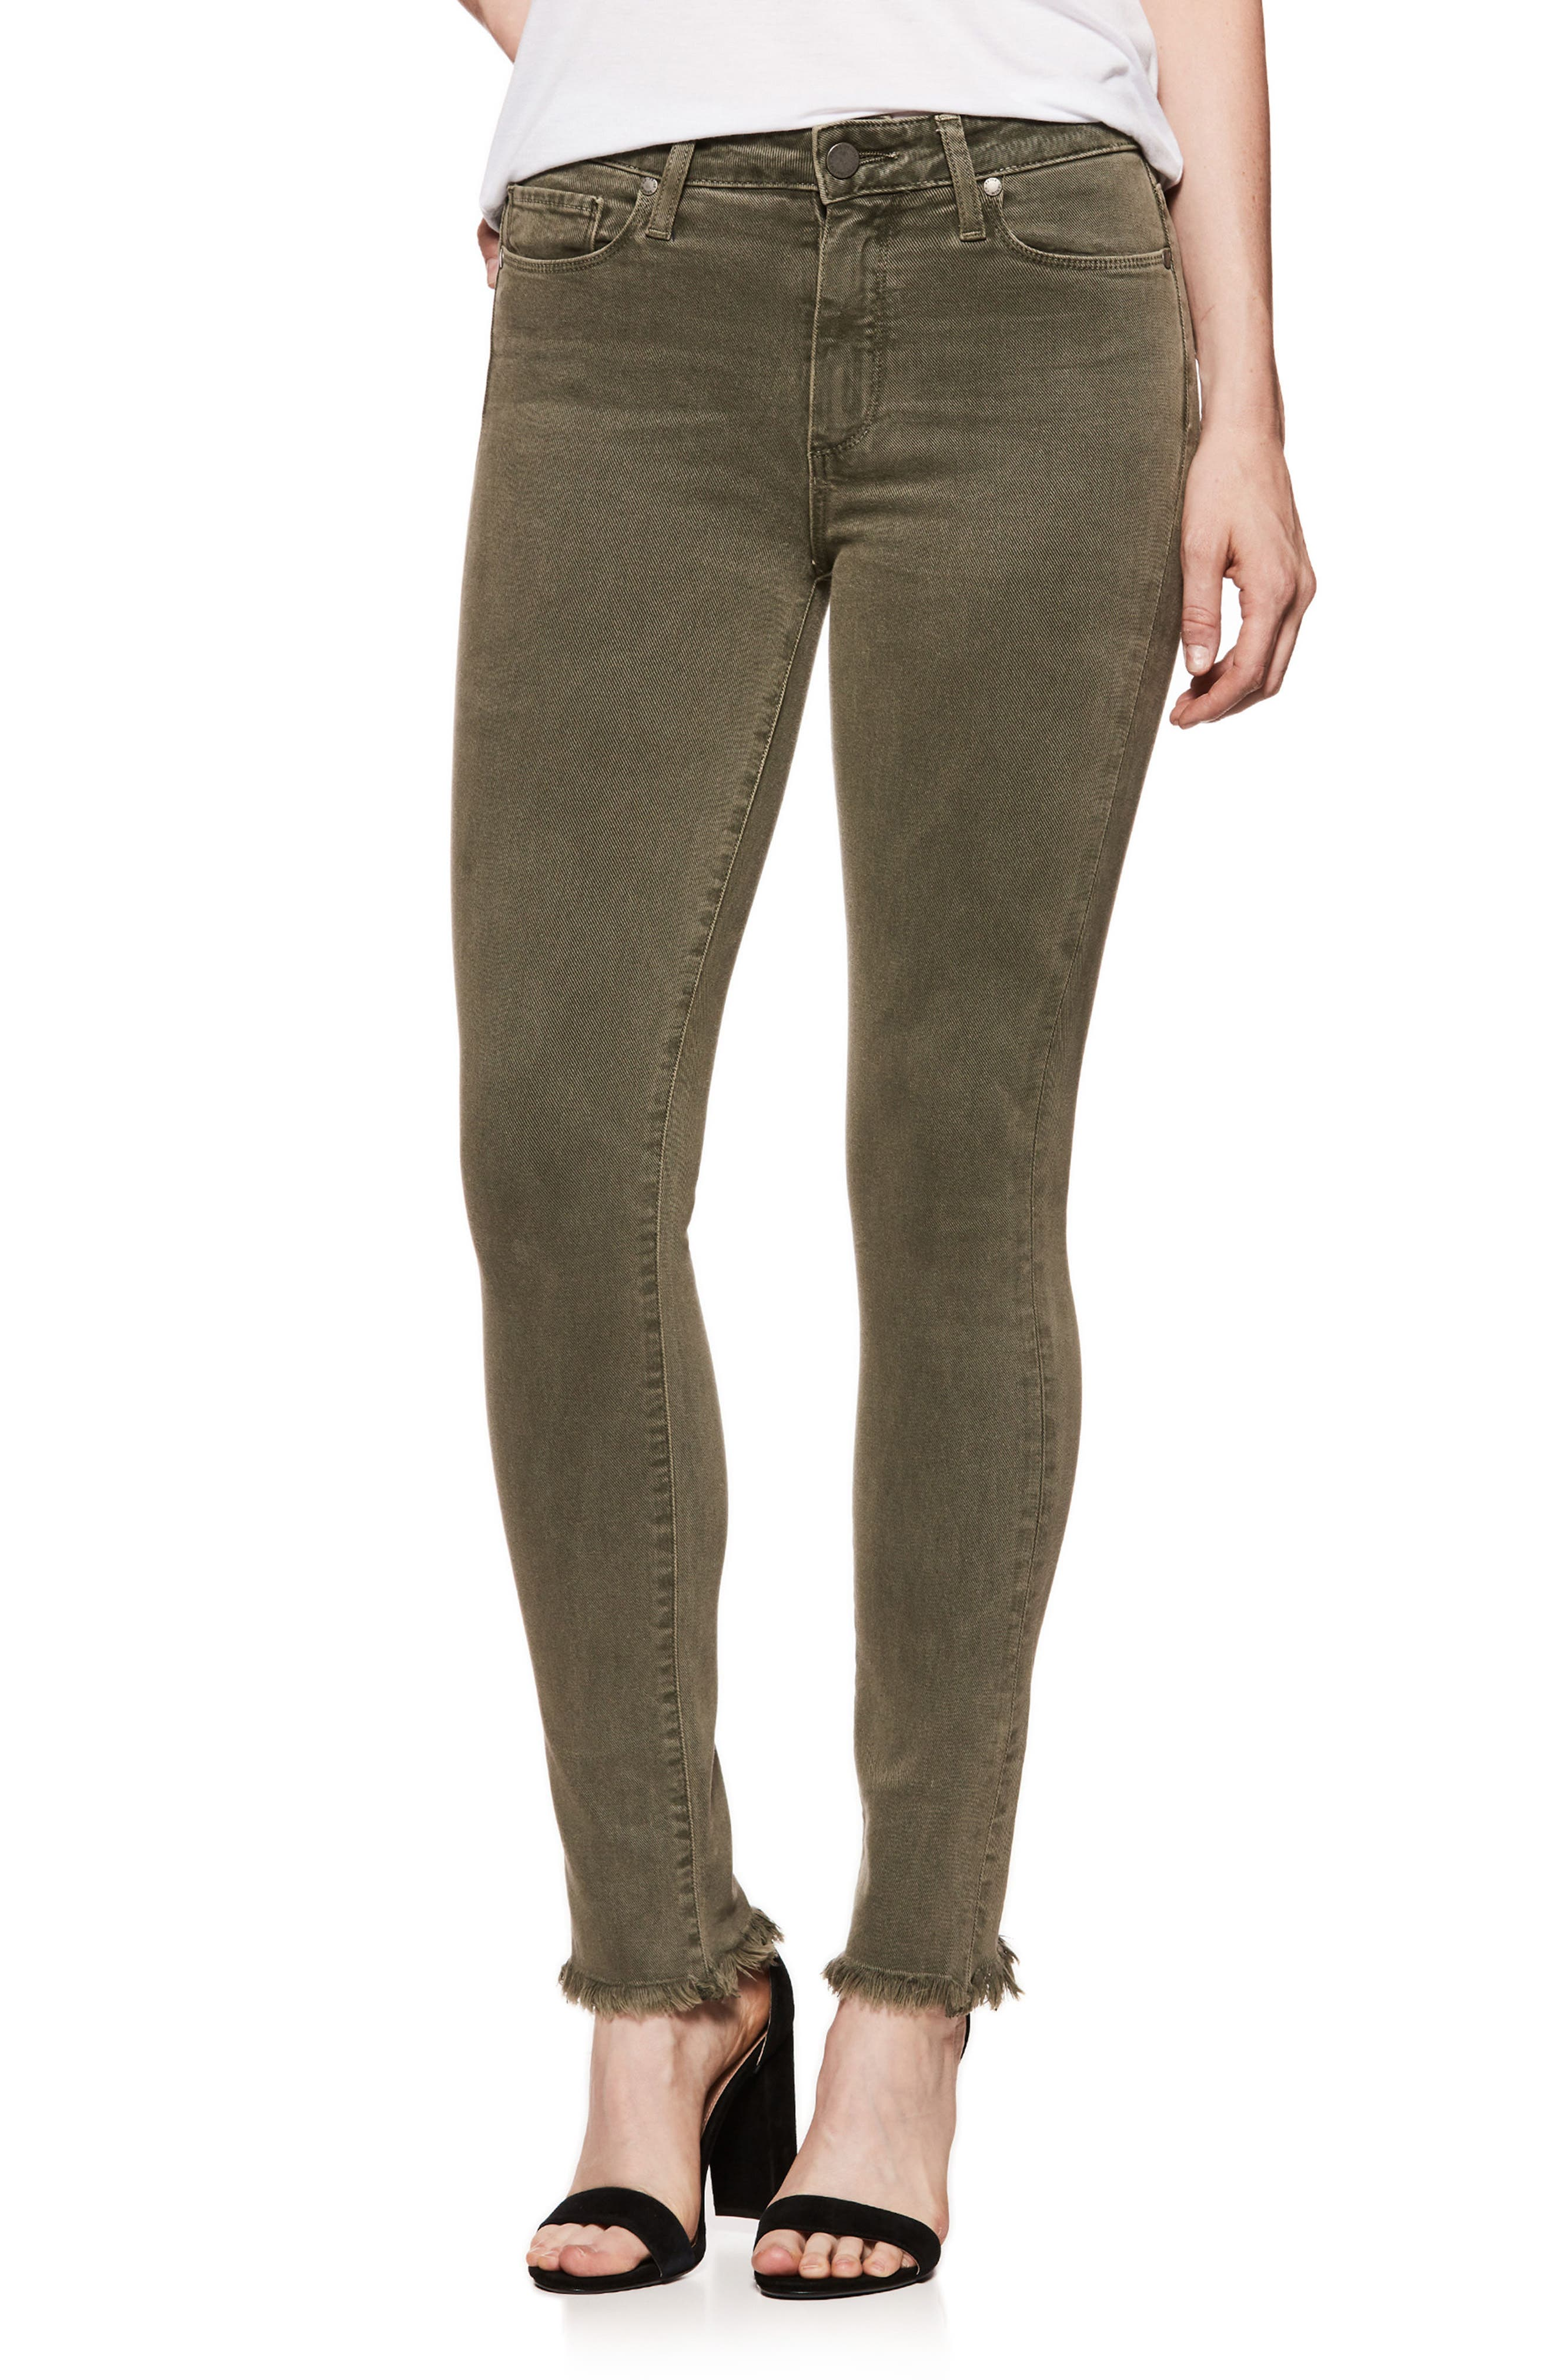 Hoxton High Waist Ankle Skinny Jeans,                         Main,                         color, Vintage Green